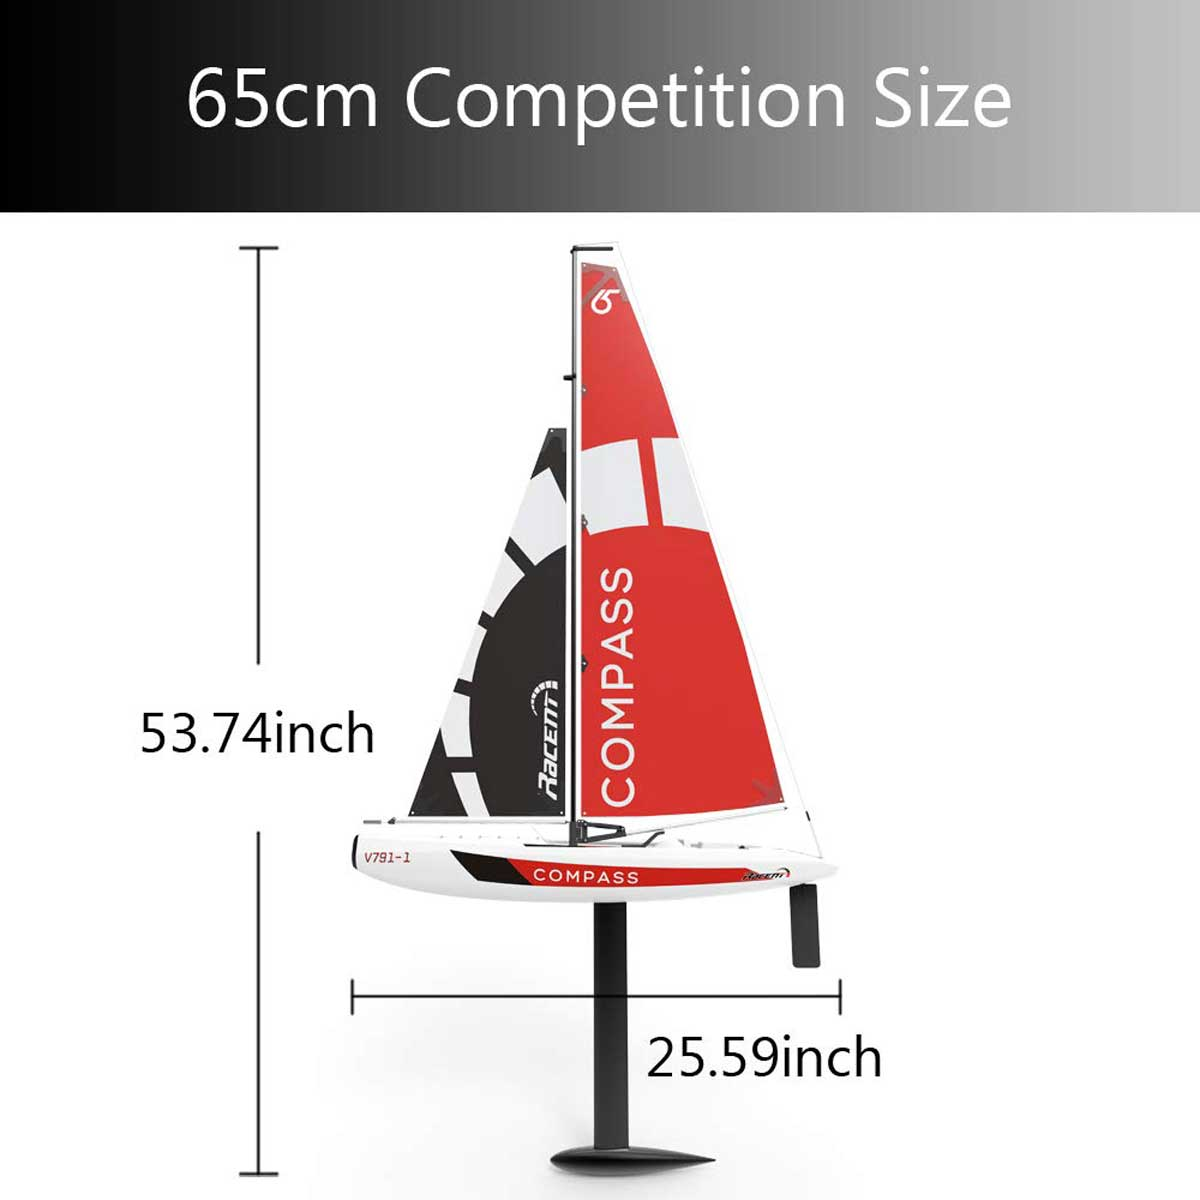 Compass 2 Channel Wind Power Sailboat with 650mm Hull for RG65 Class Competition (791-1) RTR